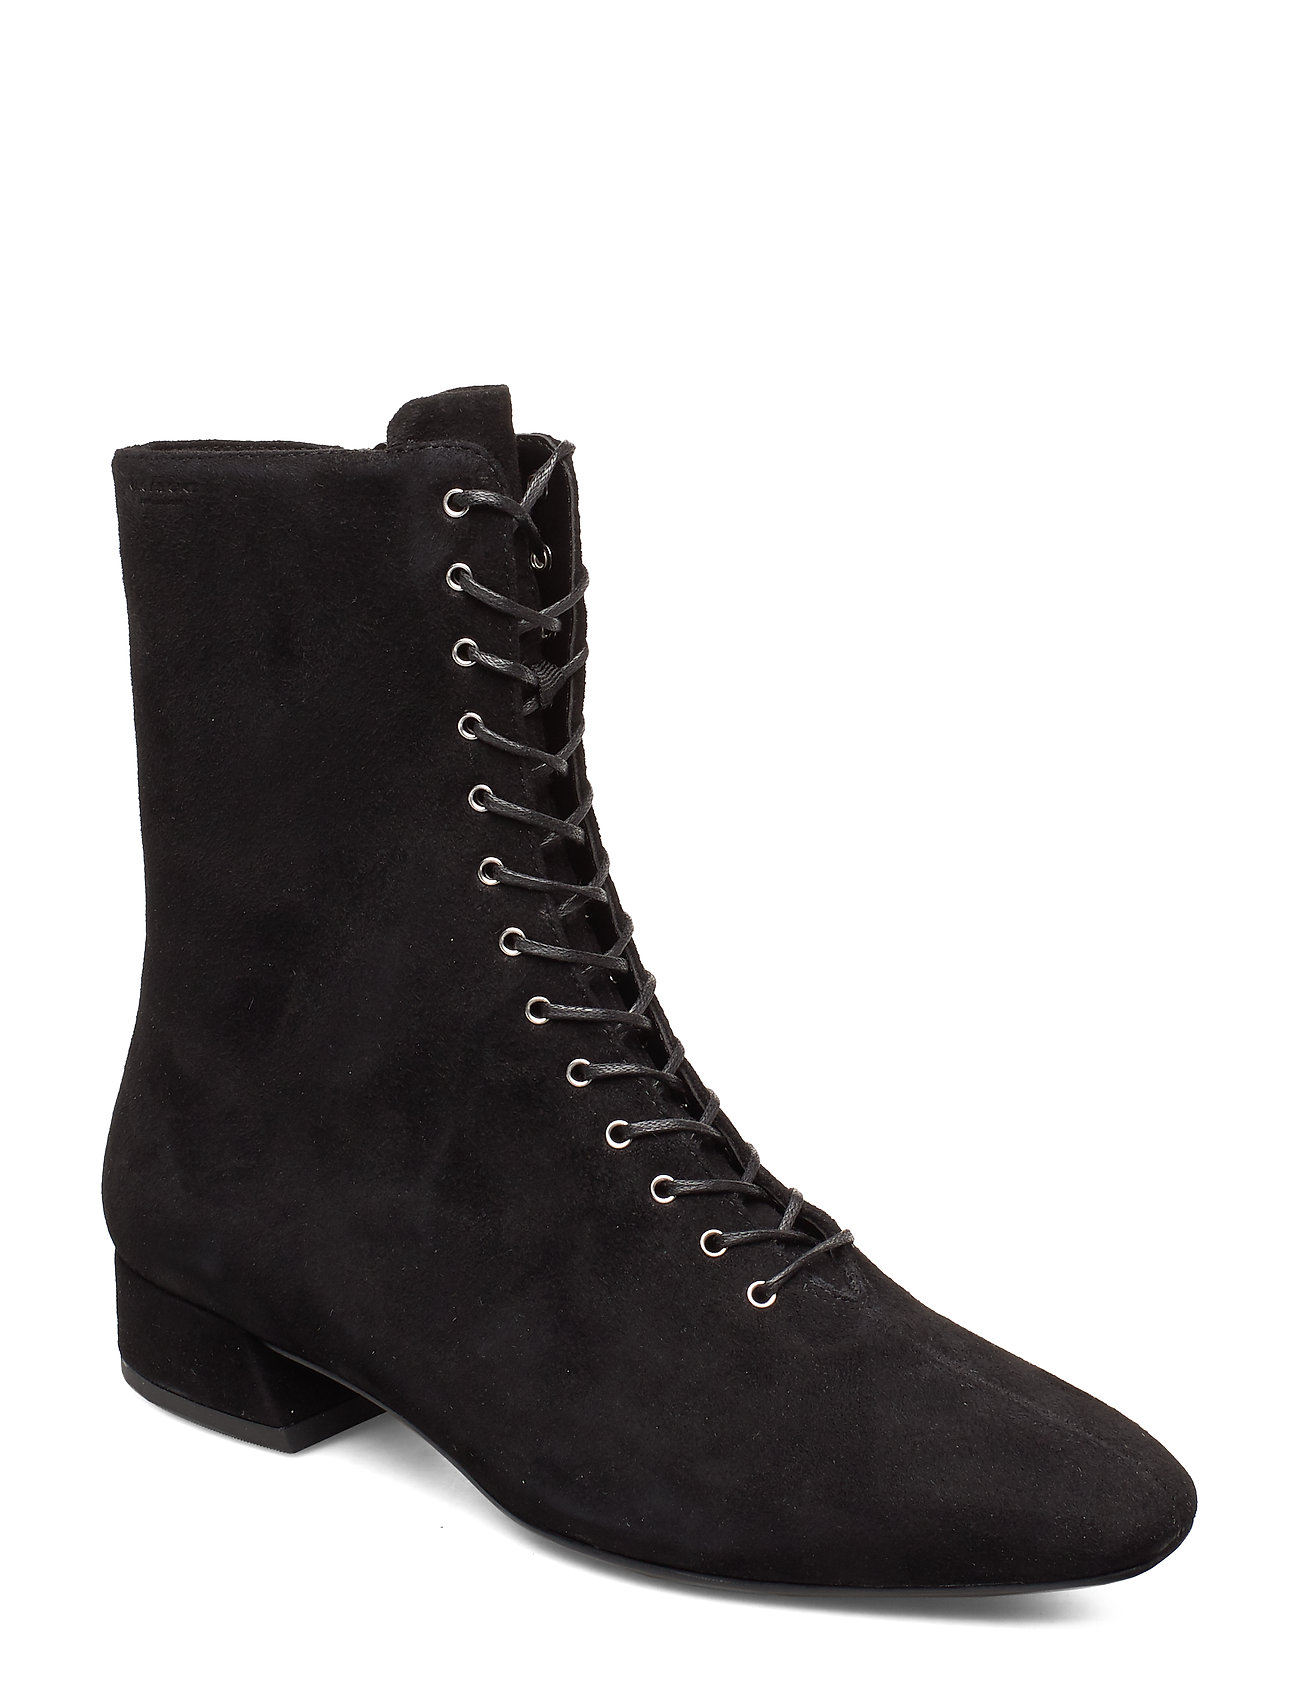 Image of Joyce Shoes Boots Ankle Boots Ankle Boots Flat Heel Sort VAGABOND (3242139899)